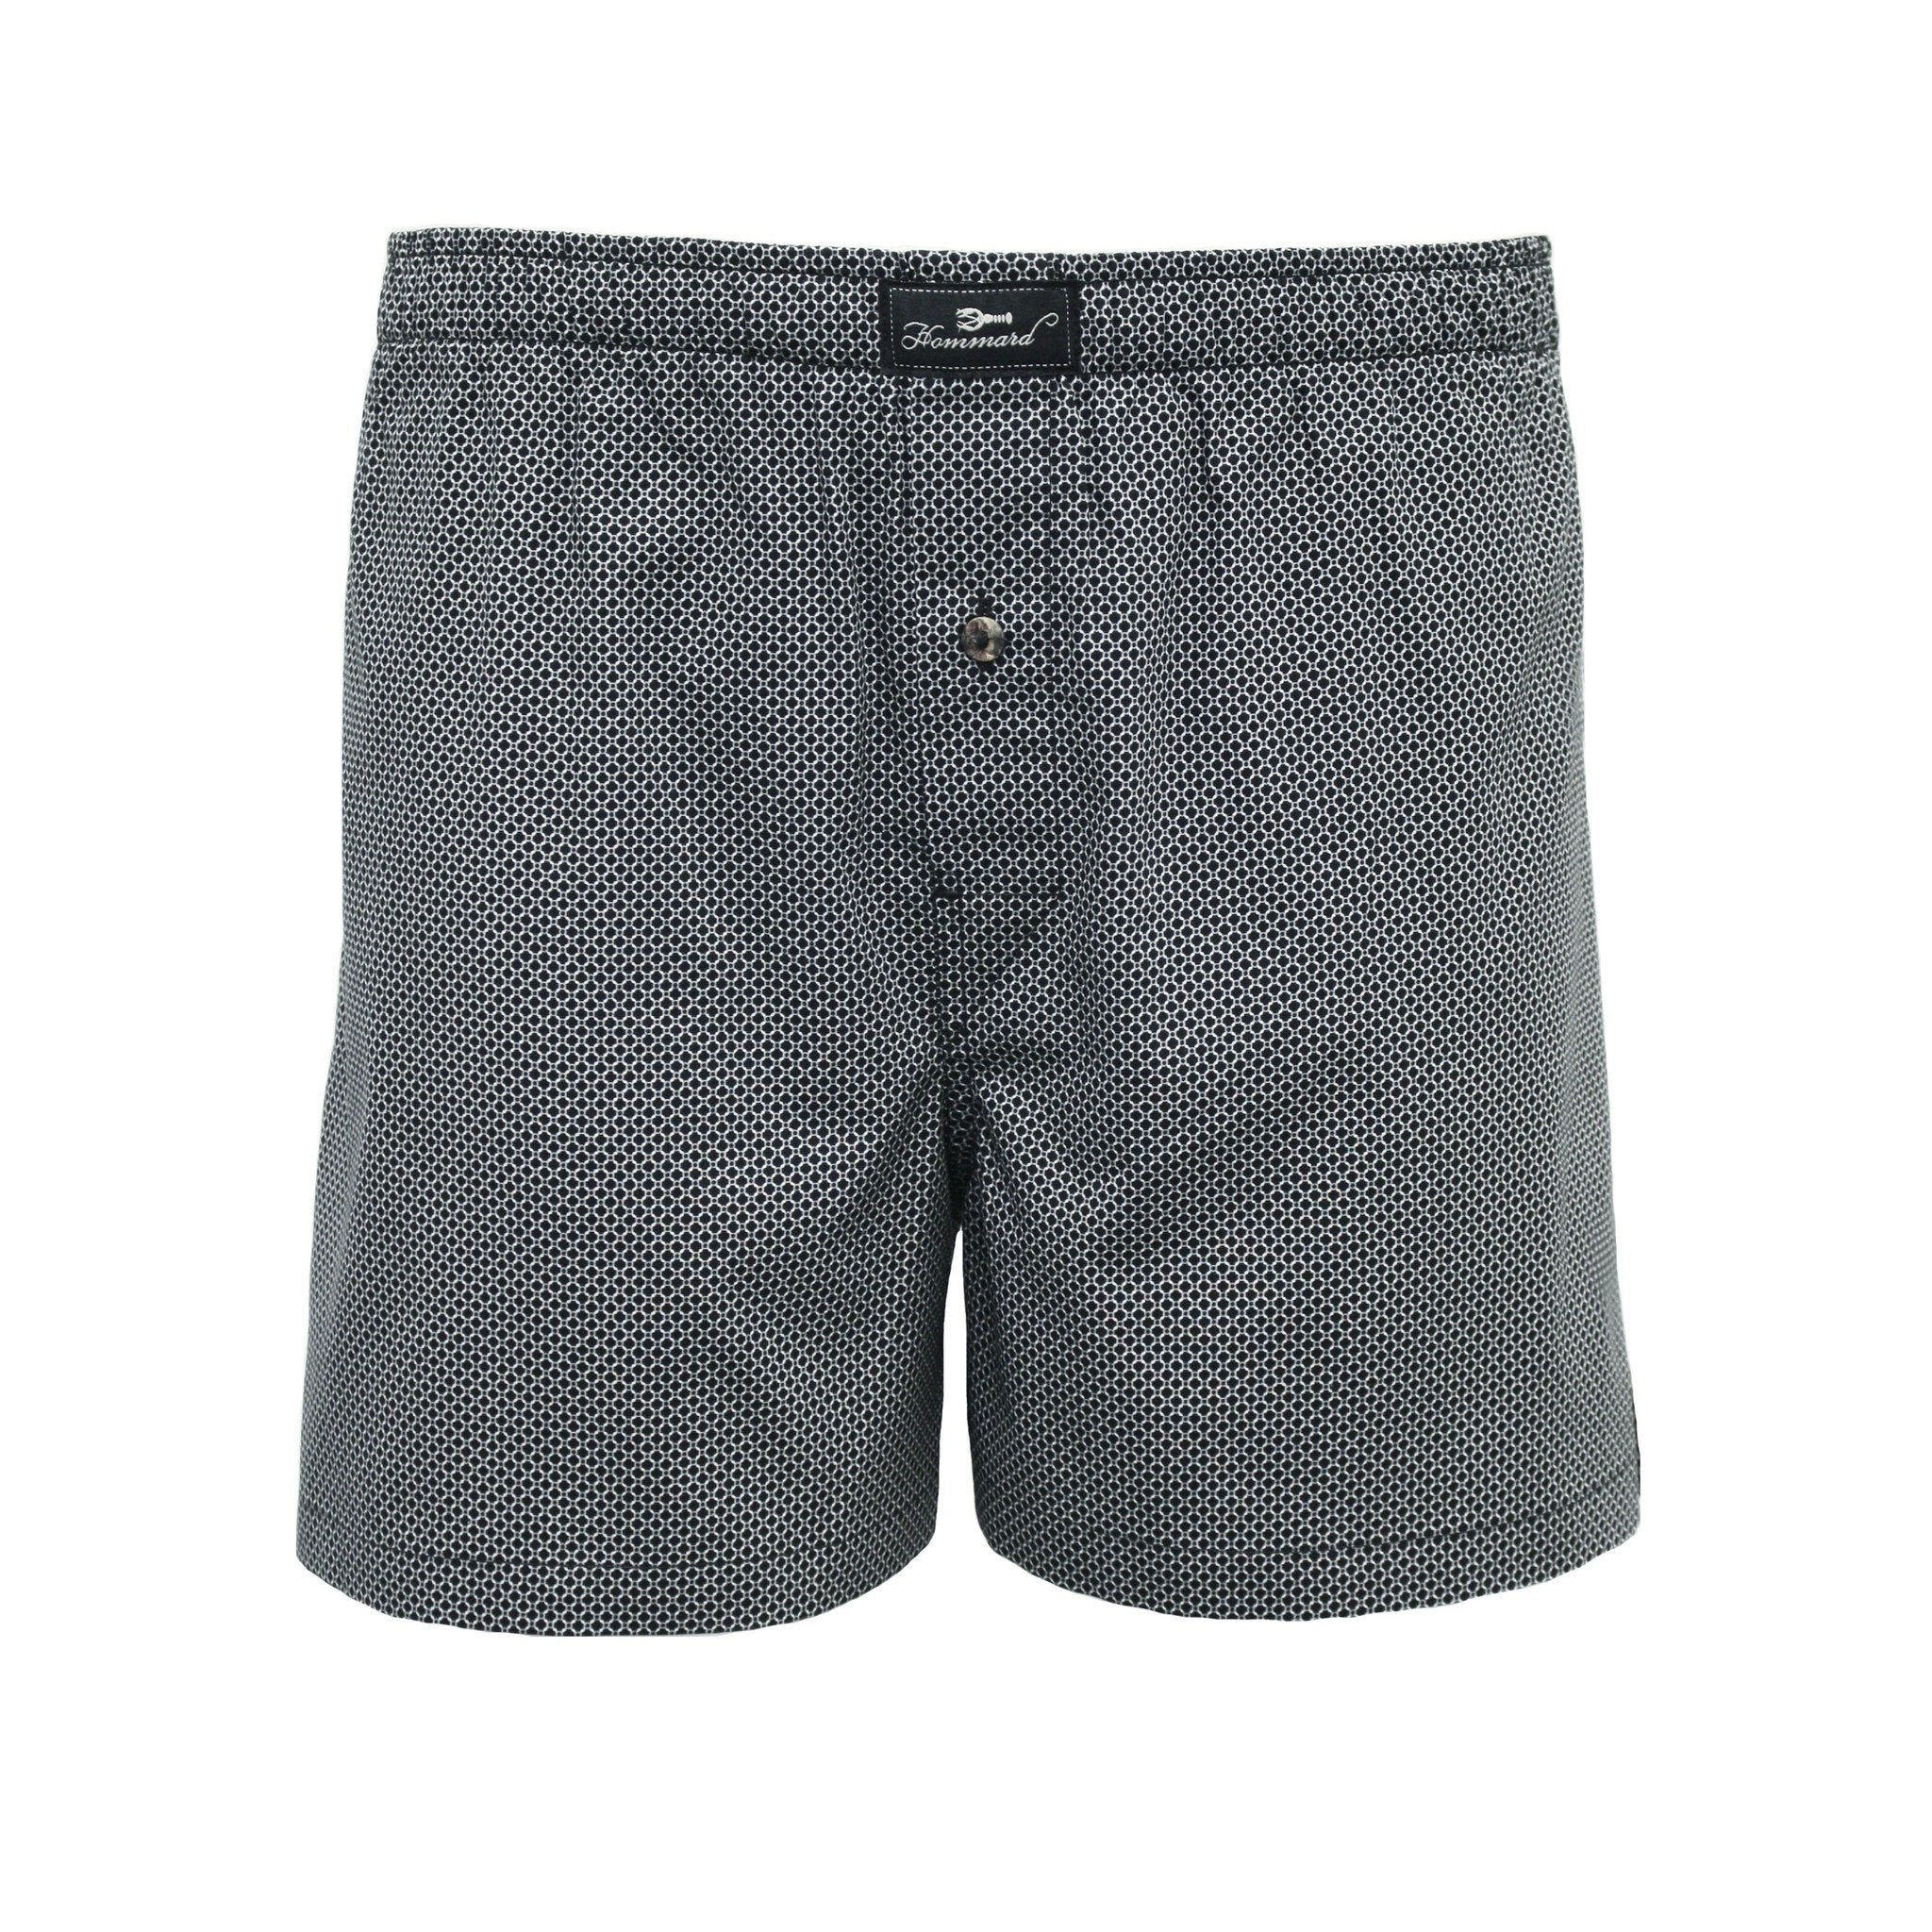 Black Dot B Men´s Woven Cotton Boxer Shorts - Hommard